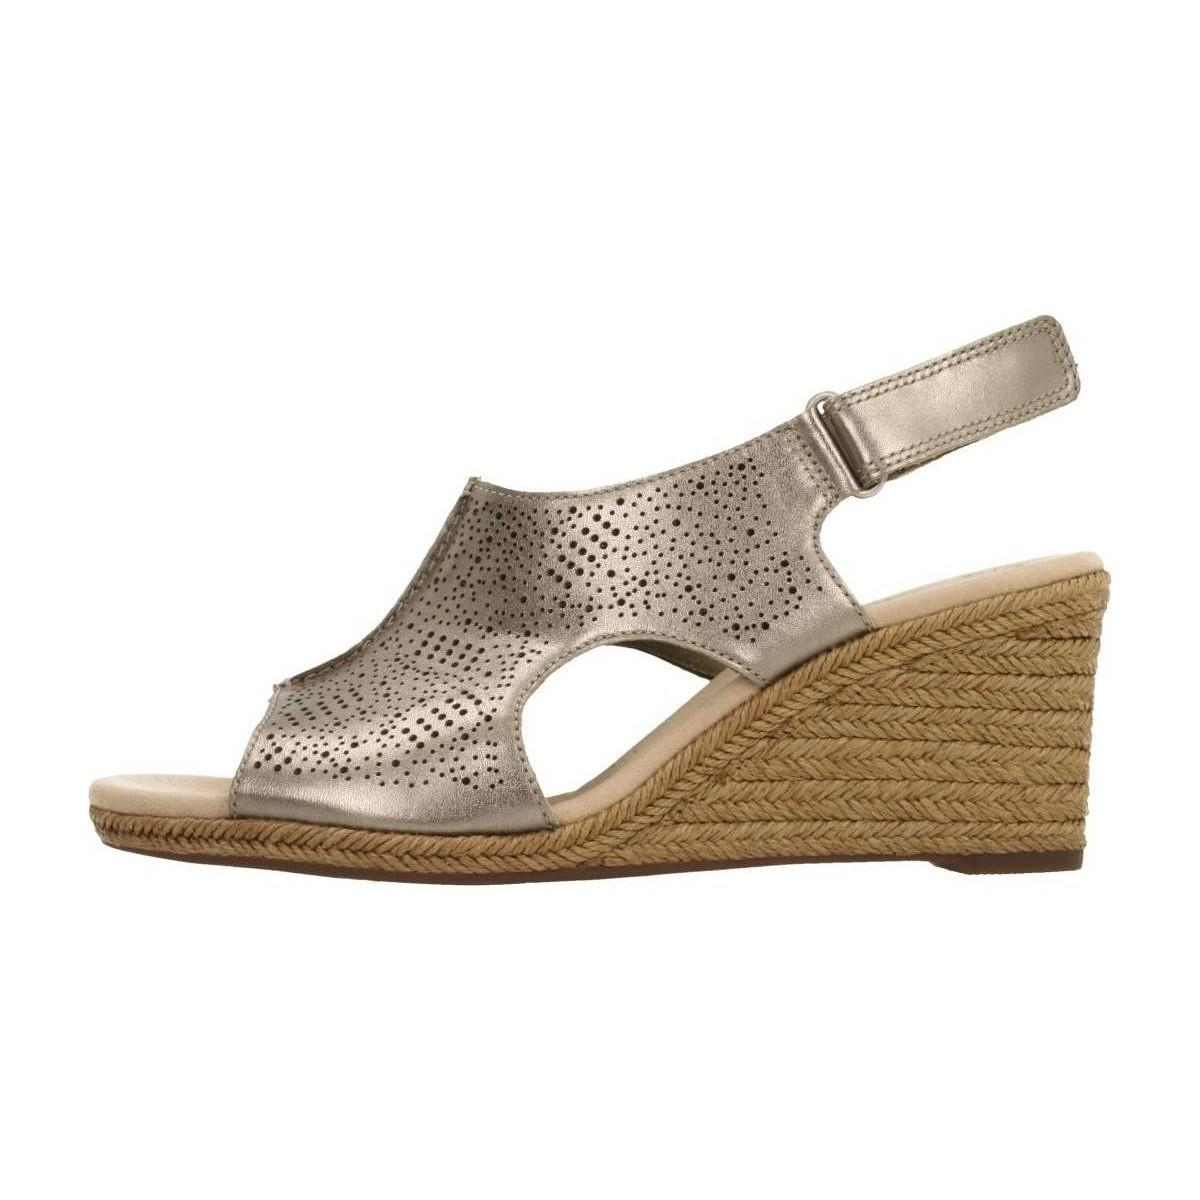 45b8bf1315d8 Clarks - Gray Lafley Rosen Pewter Metall Women s Espadrilles   Casual Shoes  In Grey - Lyst. View fullscreen